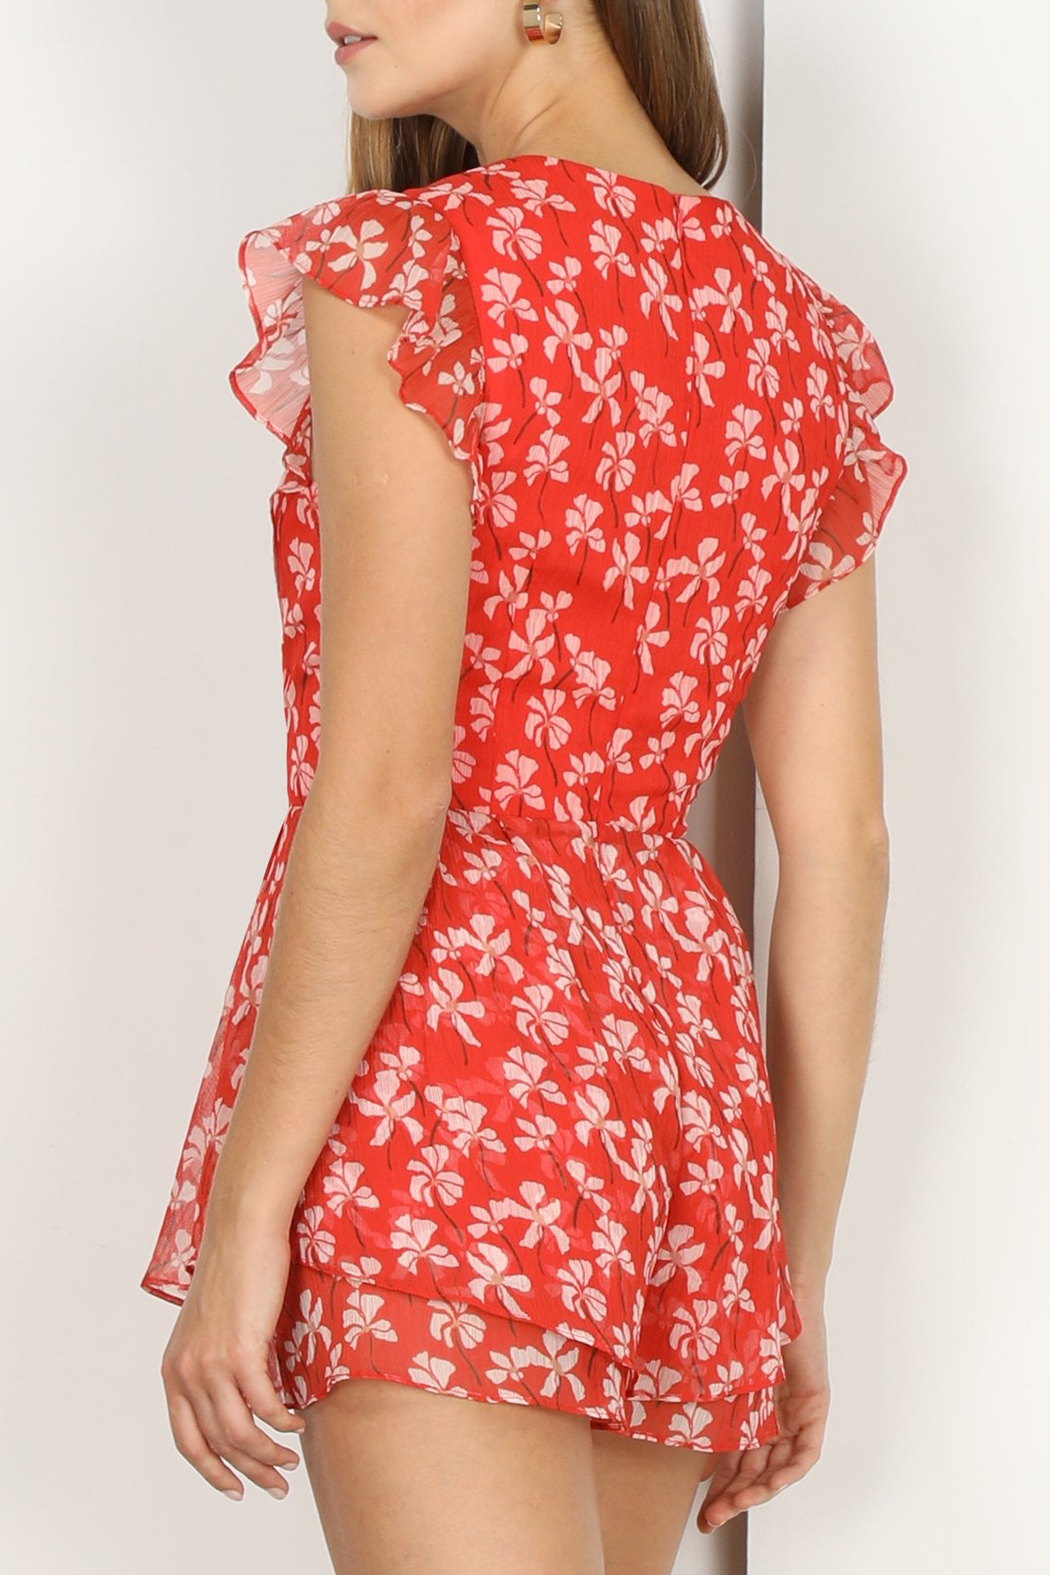 Adelyn Rae Tessie Woven Print Romper - Side Cropped Image